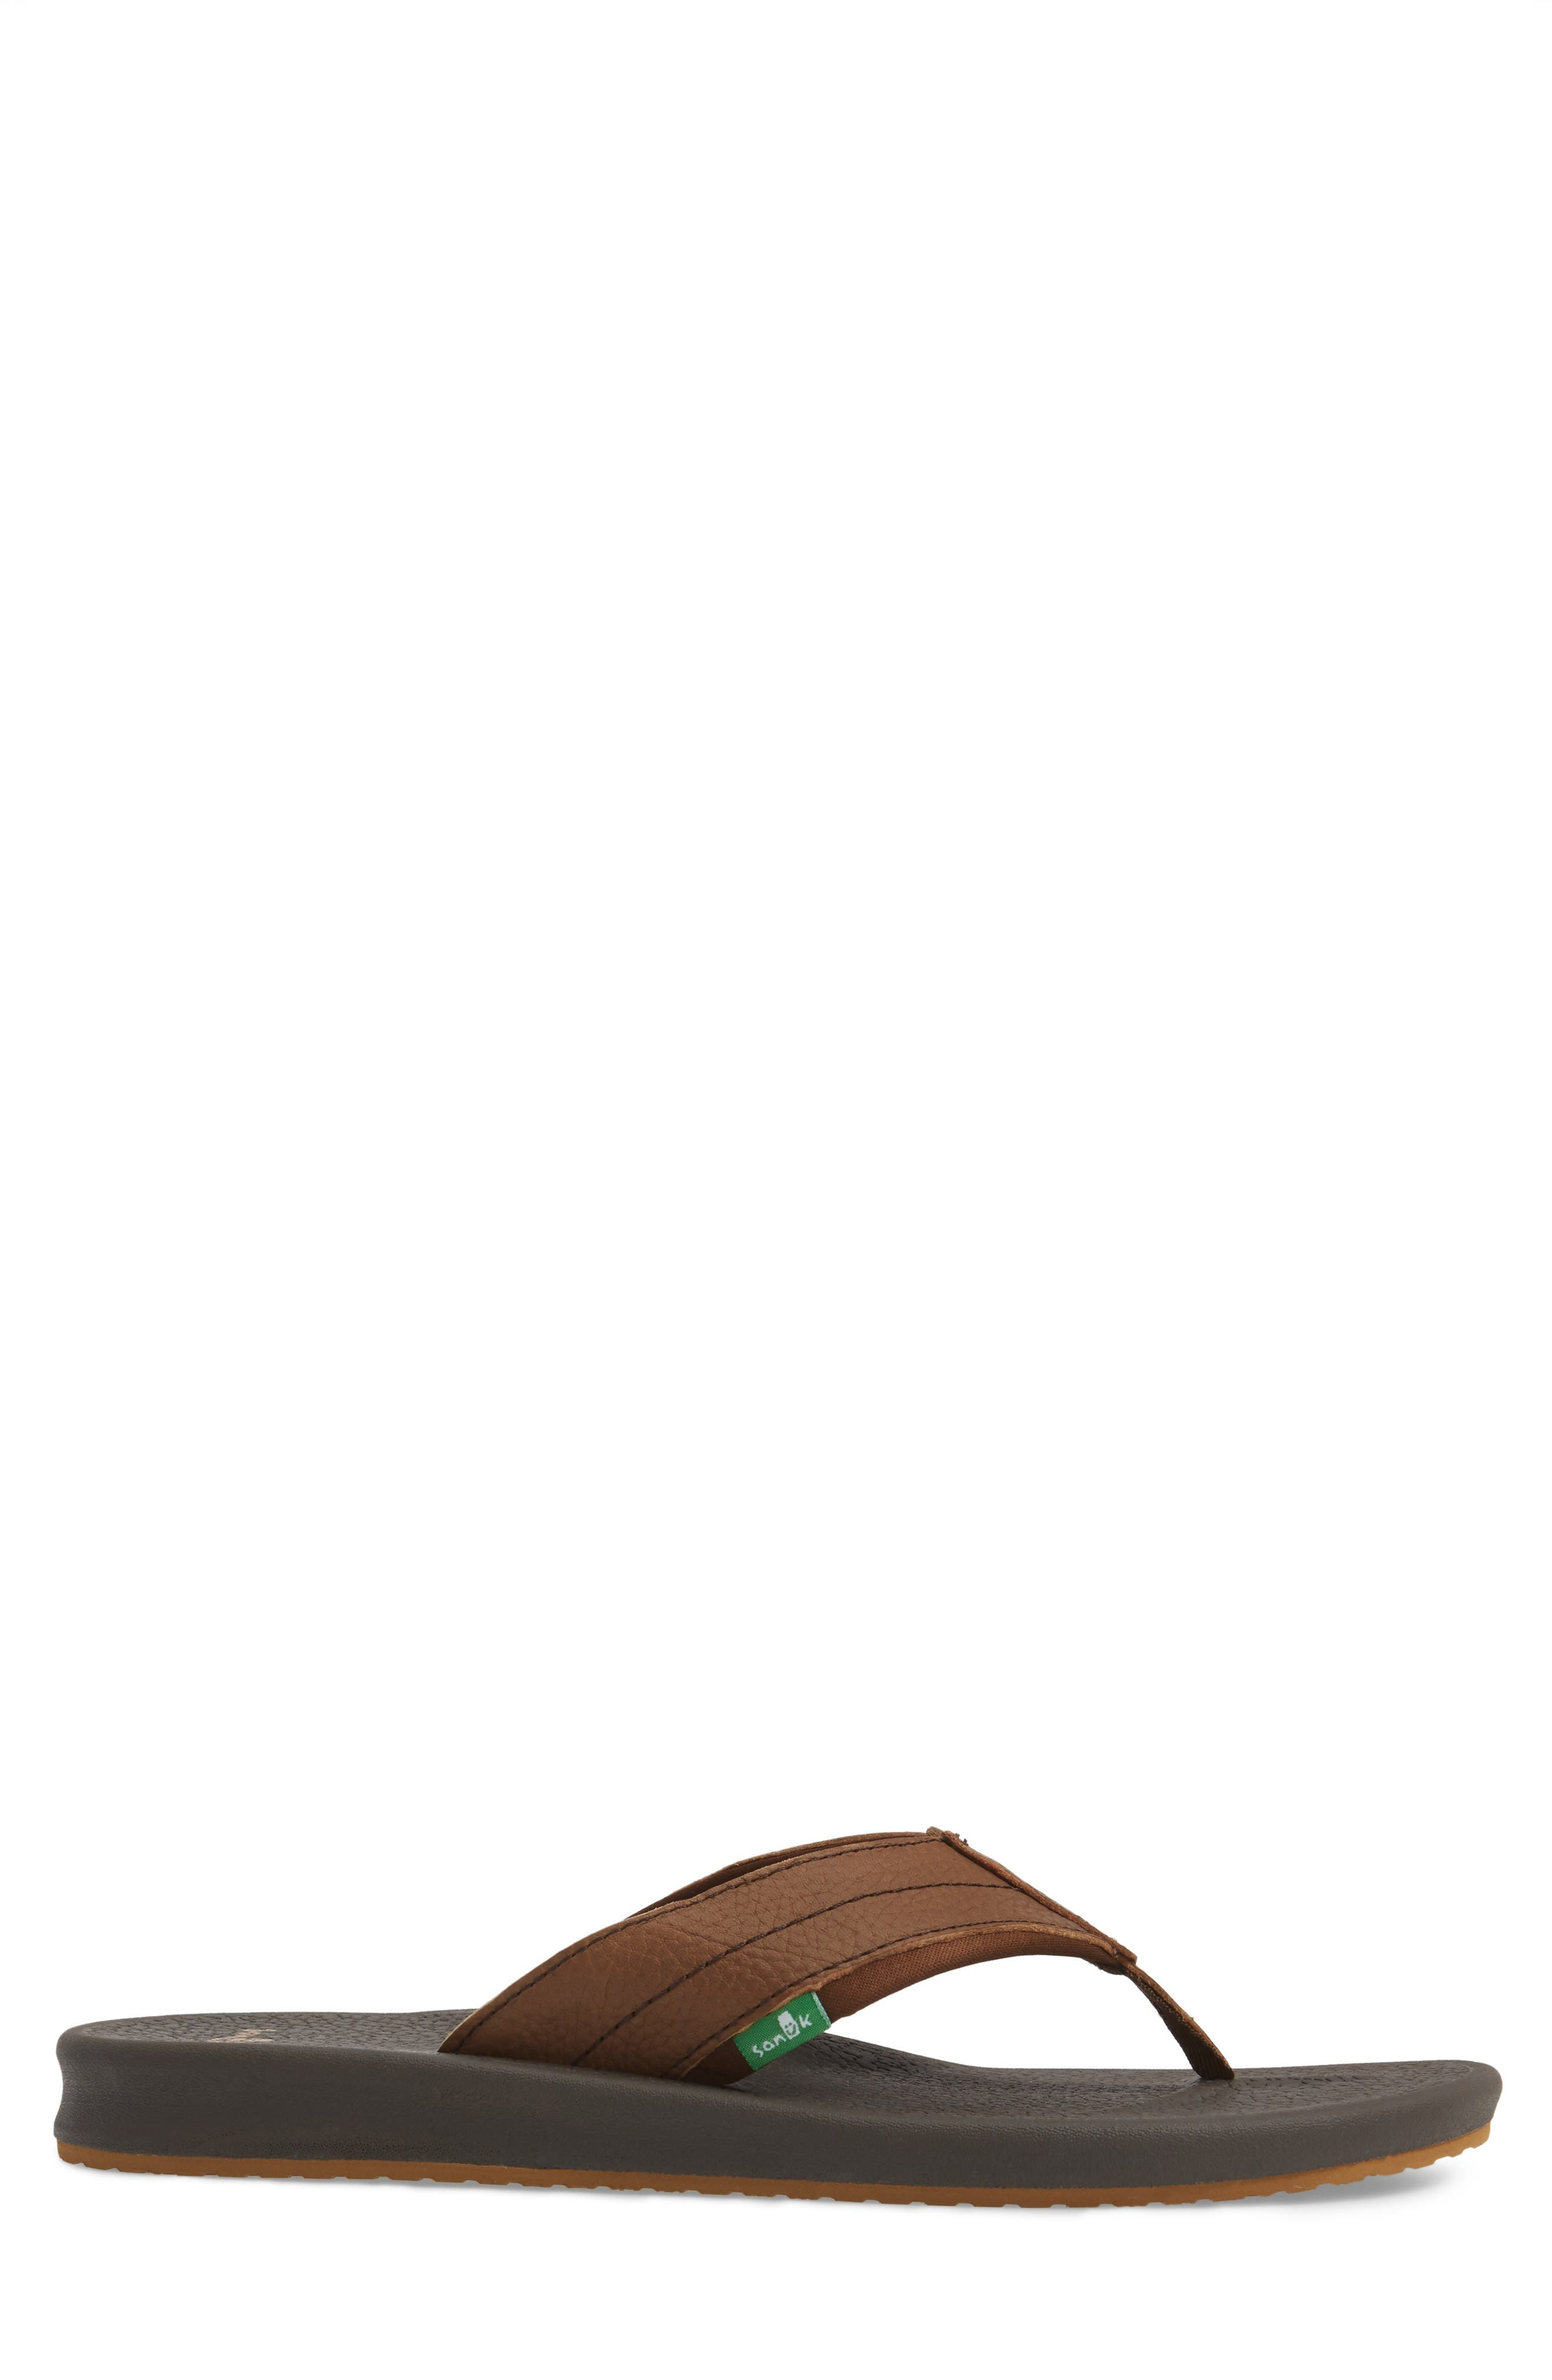 Brumesiter Primo Flip Flop,                             Alternate thumbnail 3, color,                             Brown Leather